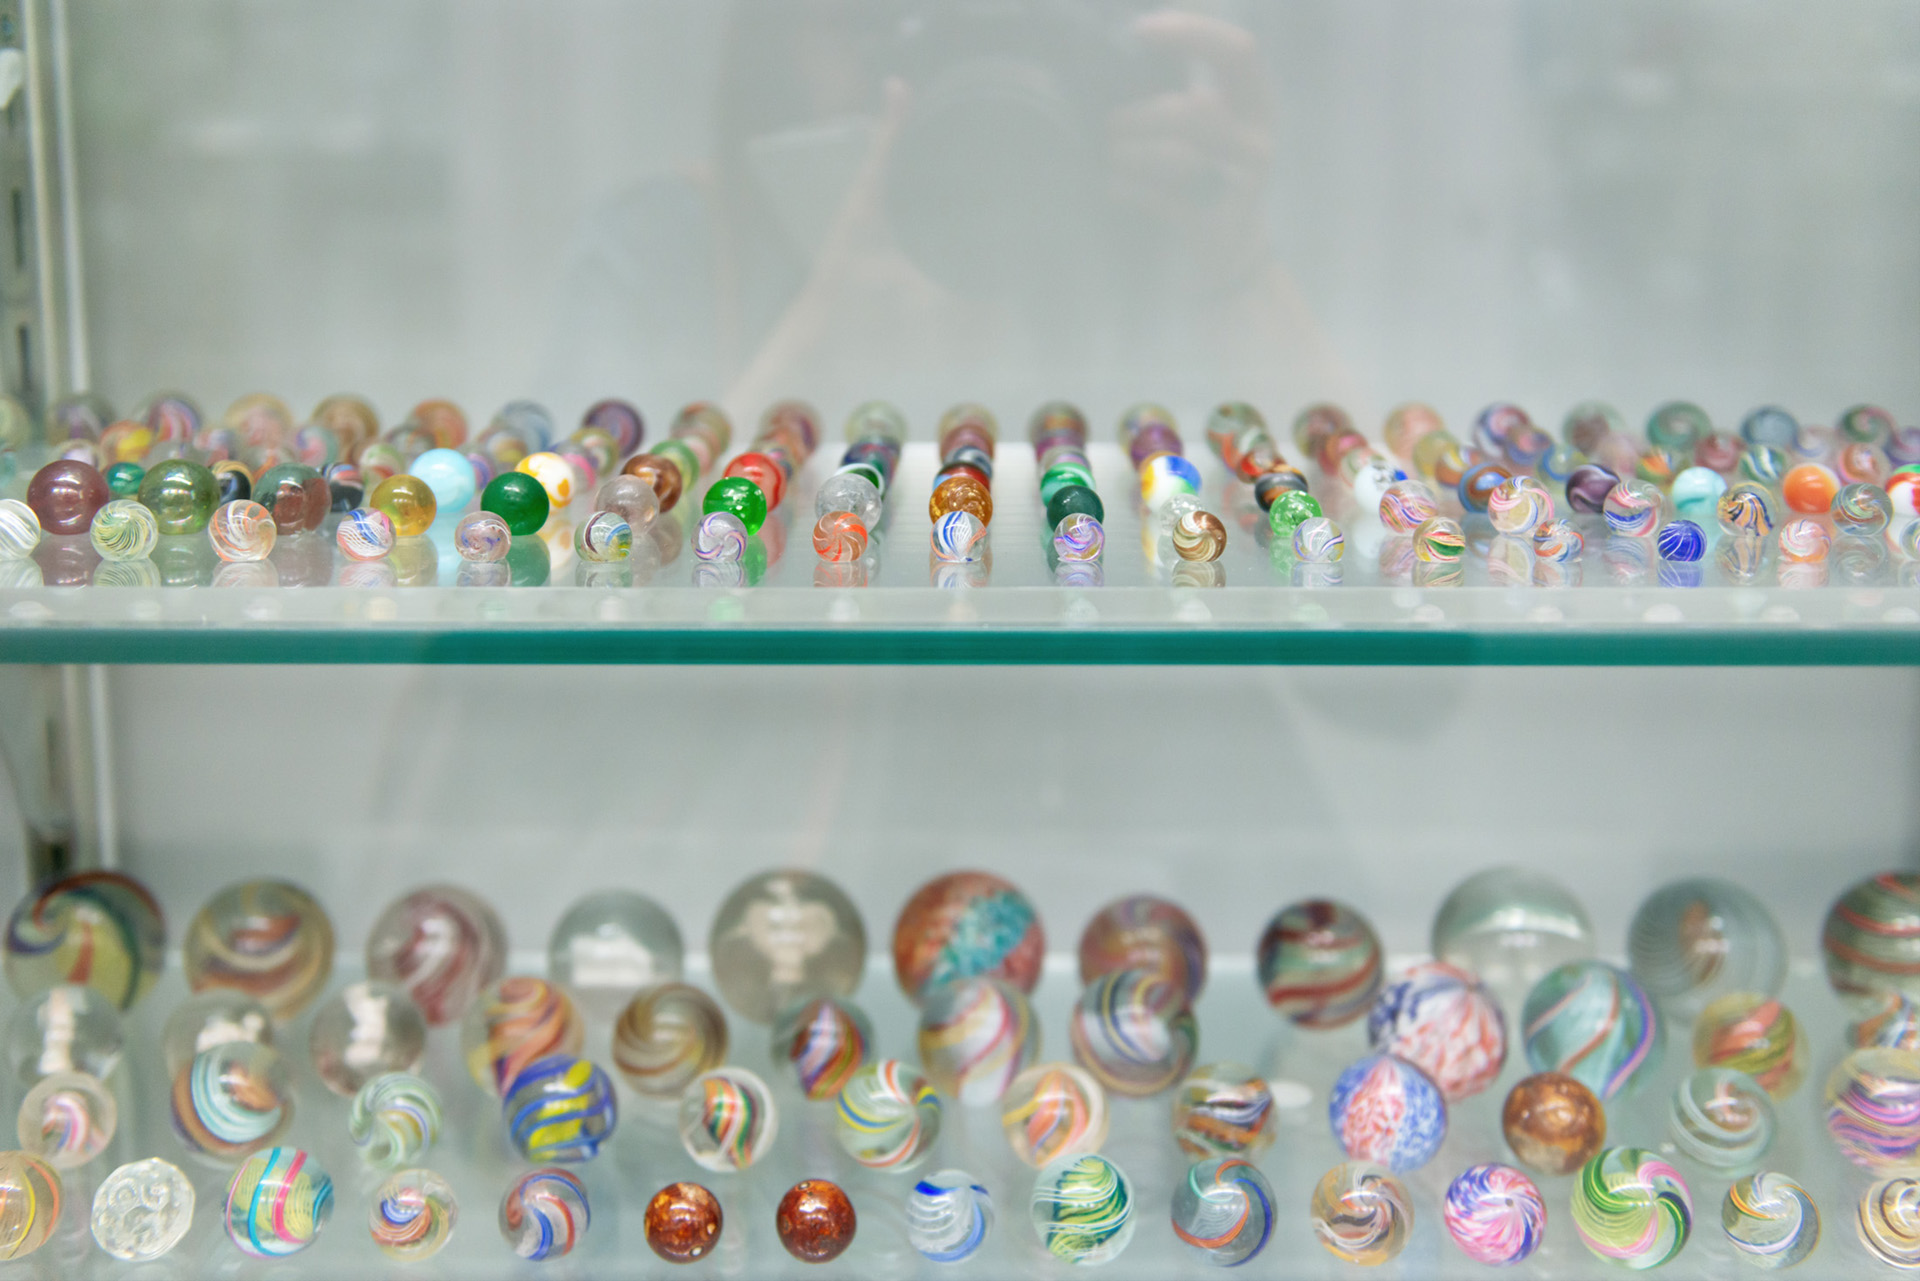 Marbles at the Corning Museum of Glass